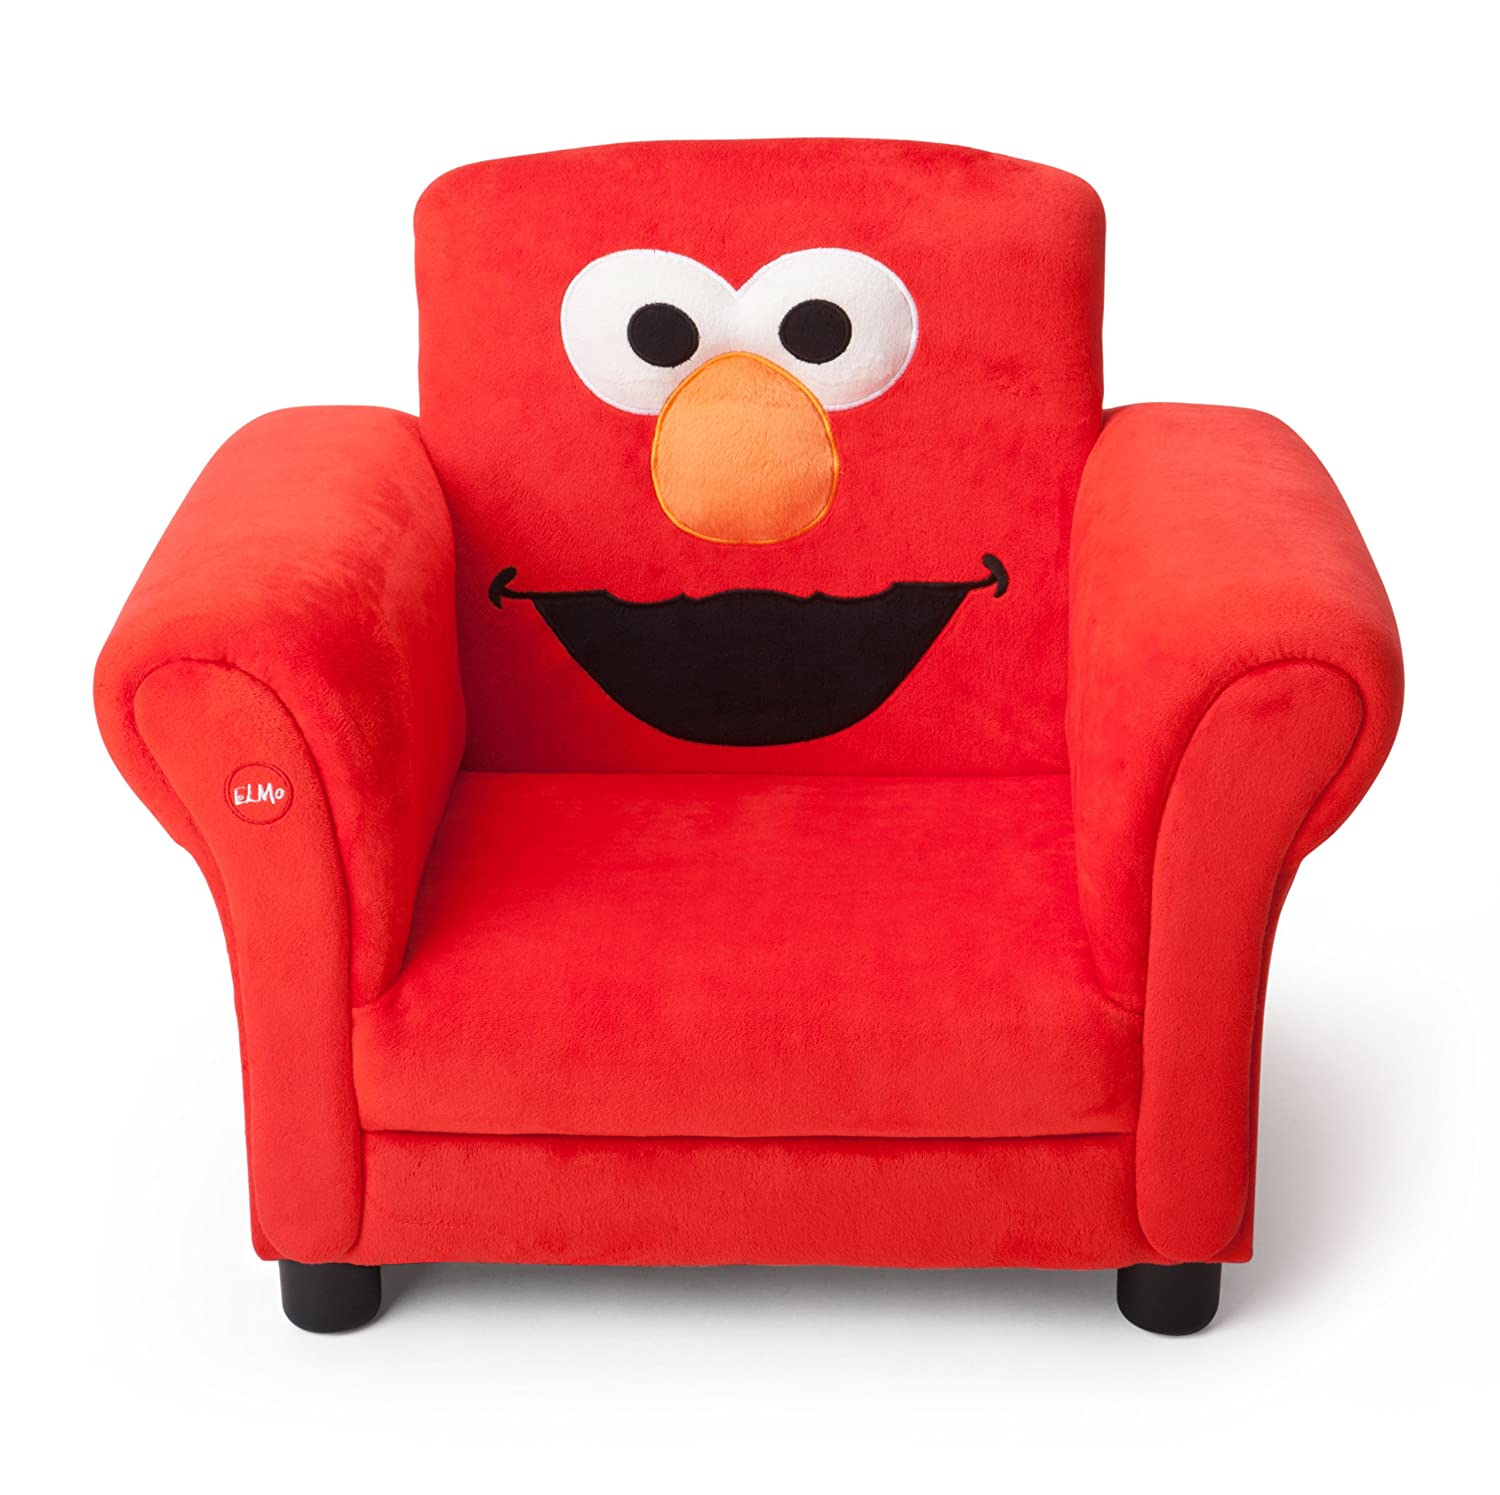 Amazon Delta Children Upholstered Chair W Sound Elmo Sesame